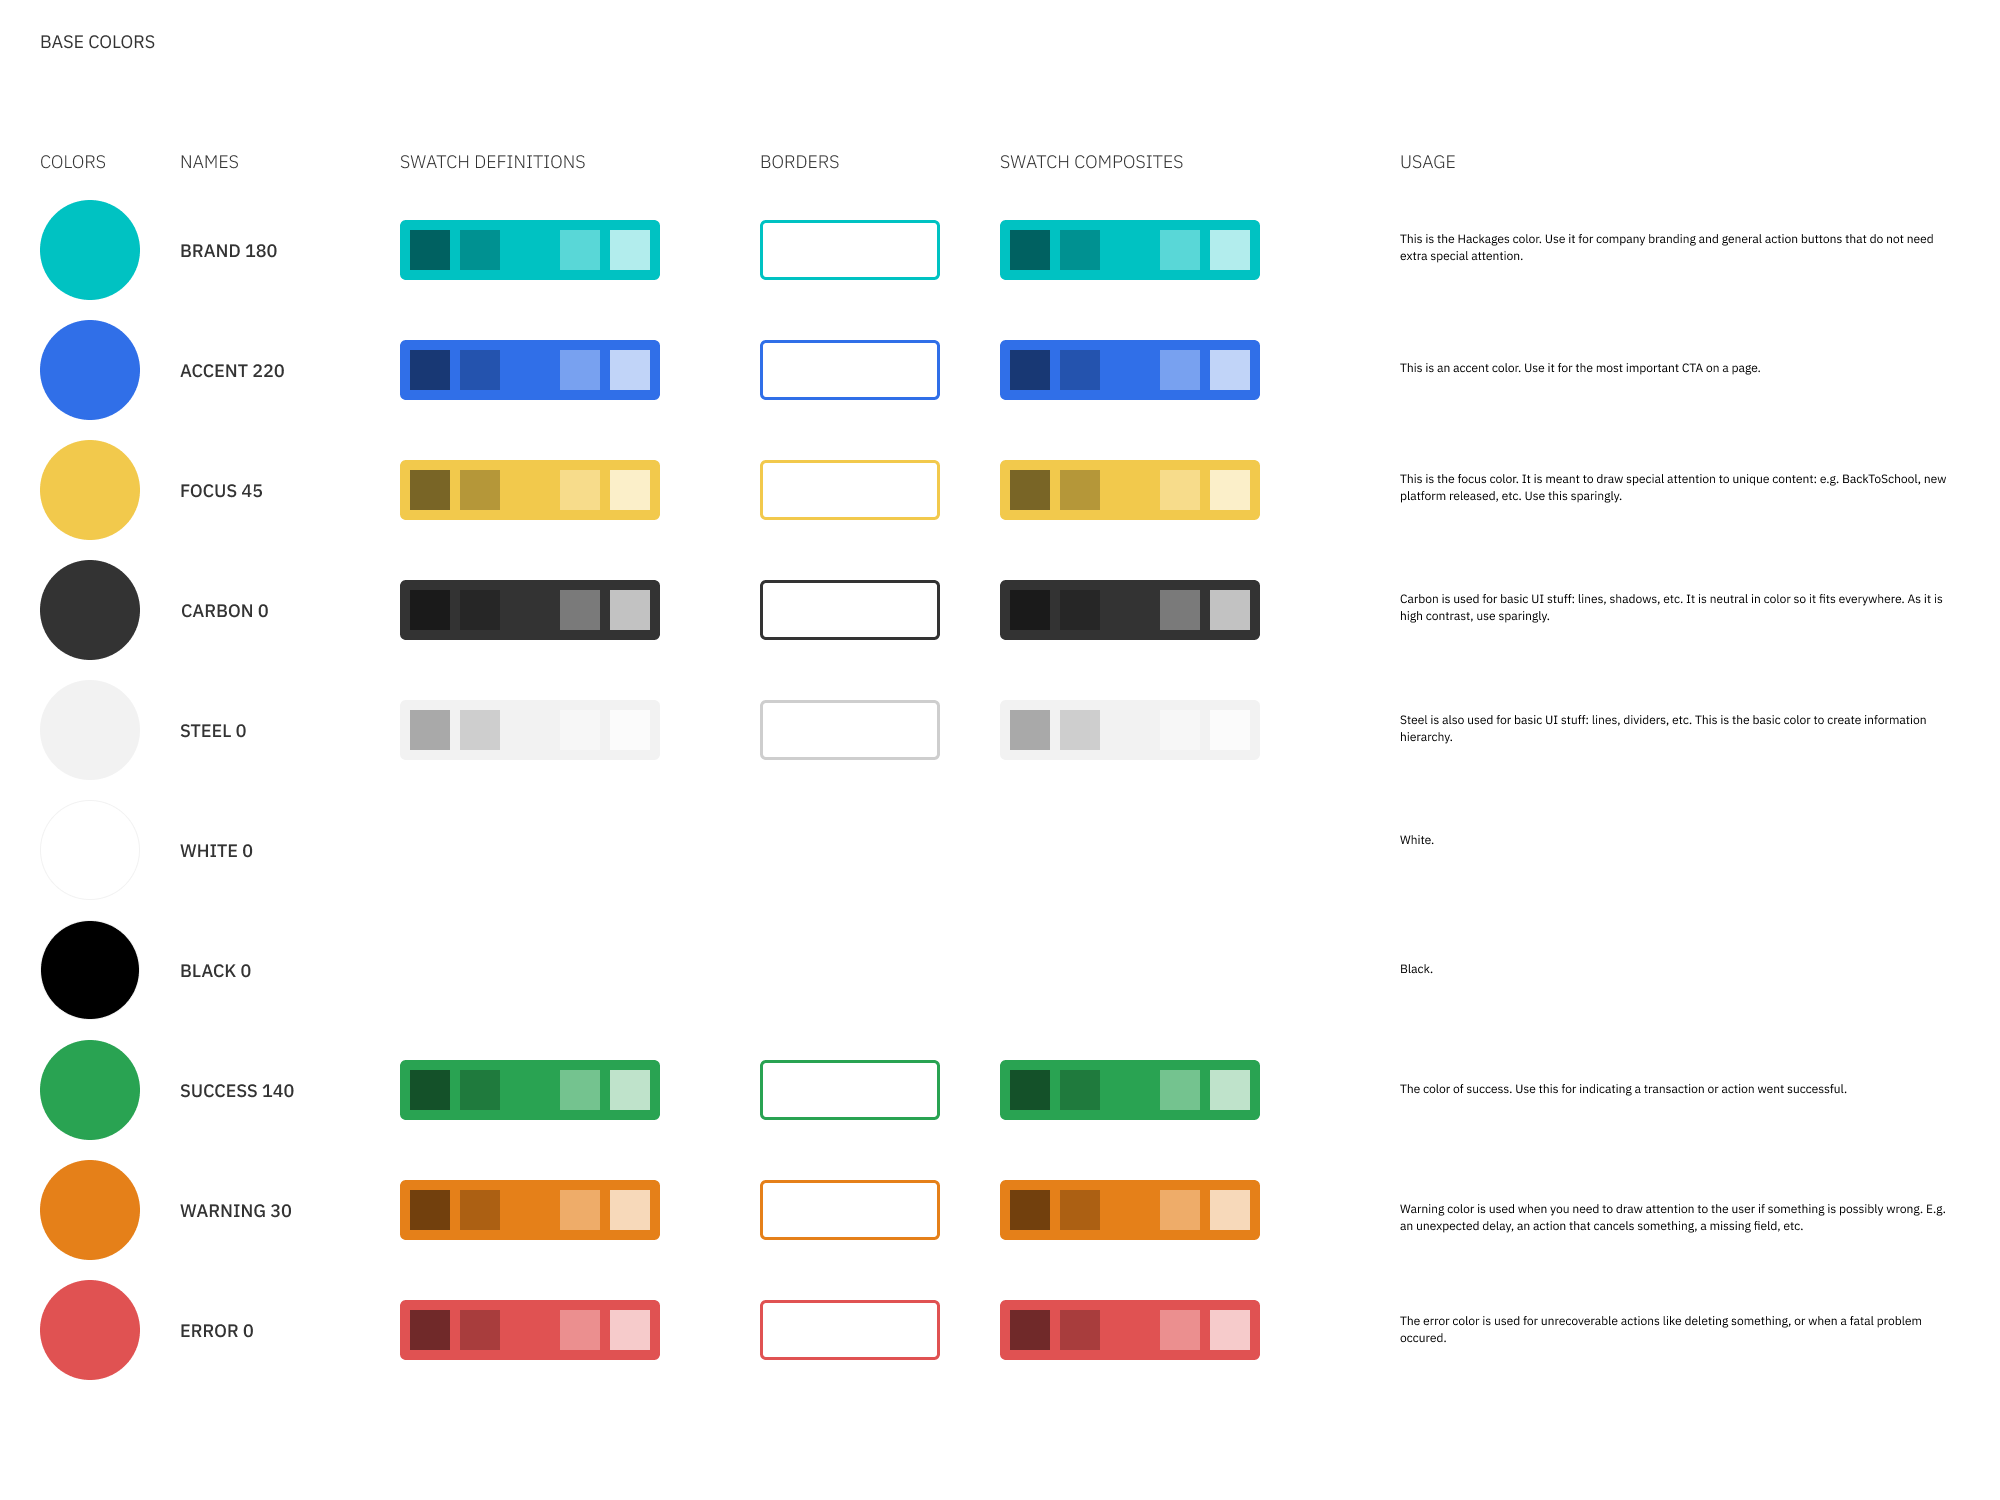 Base colors that define brand, action, focus and status. Each has various tints and shadows.